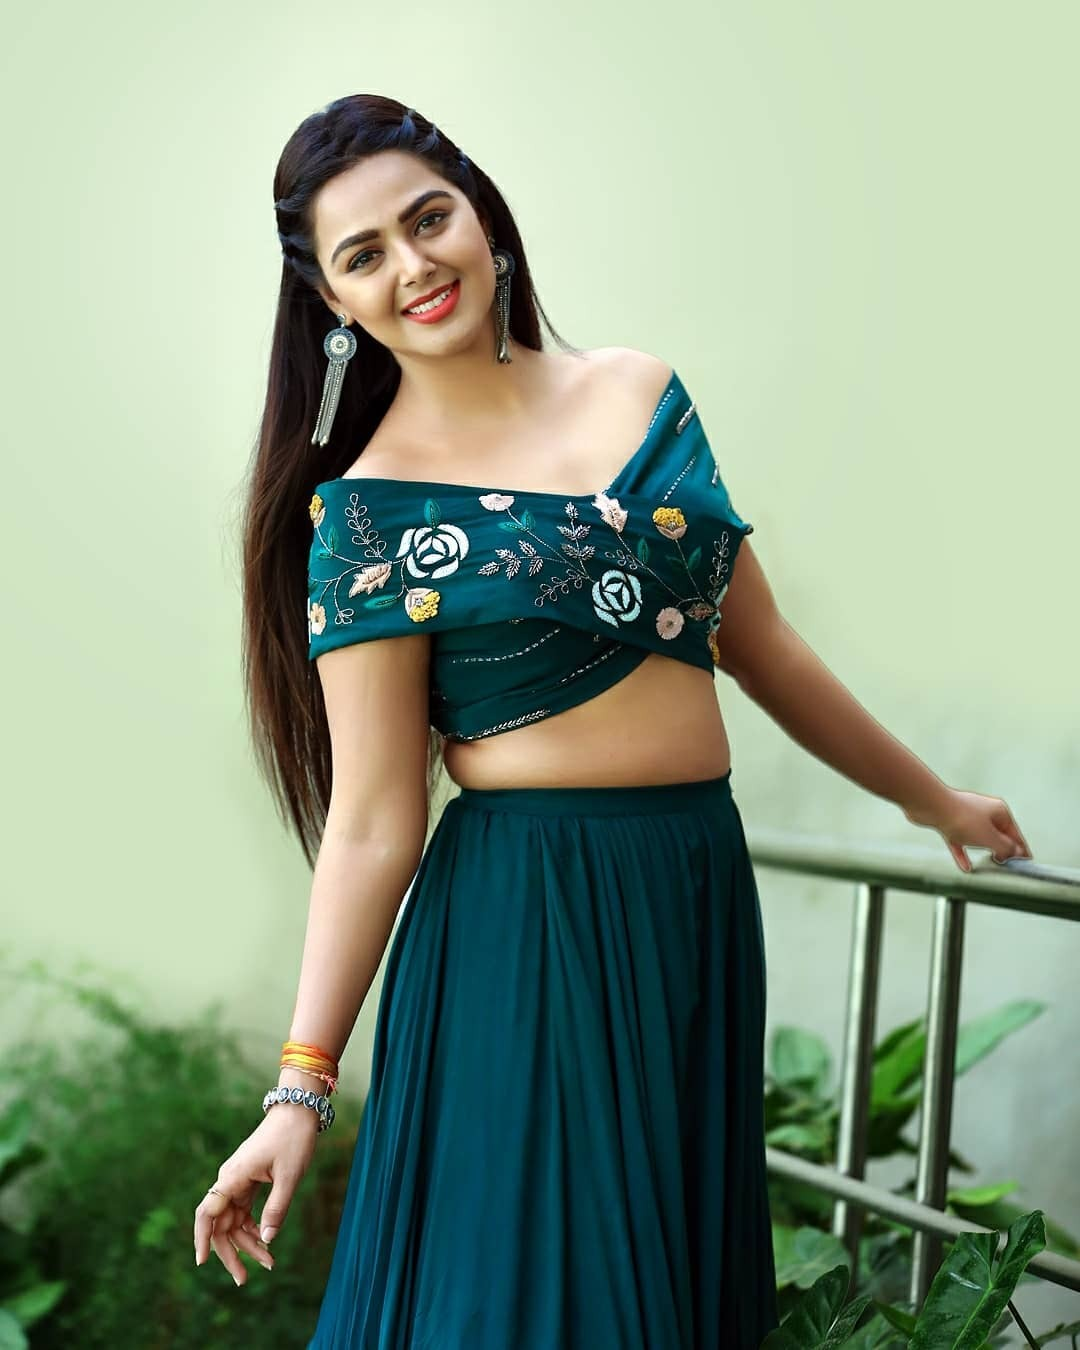 Monal Gajjar in teal green outfit by Atelier for Dance plus1